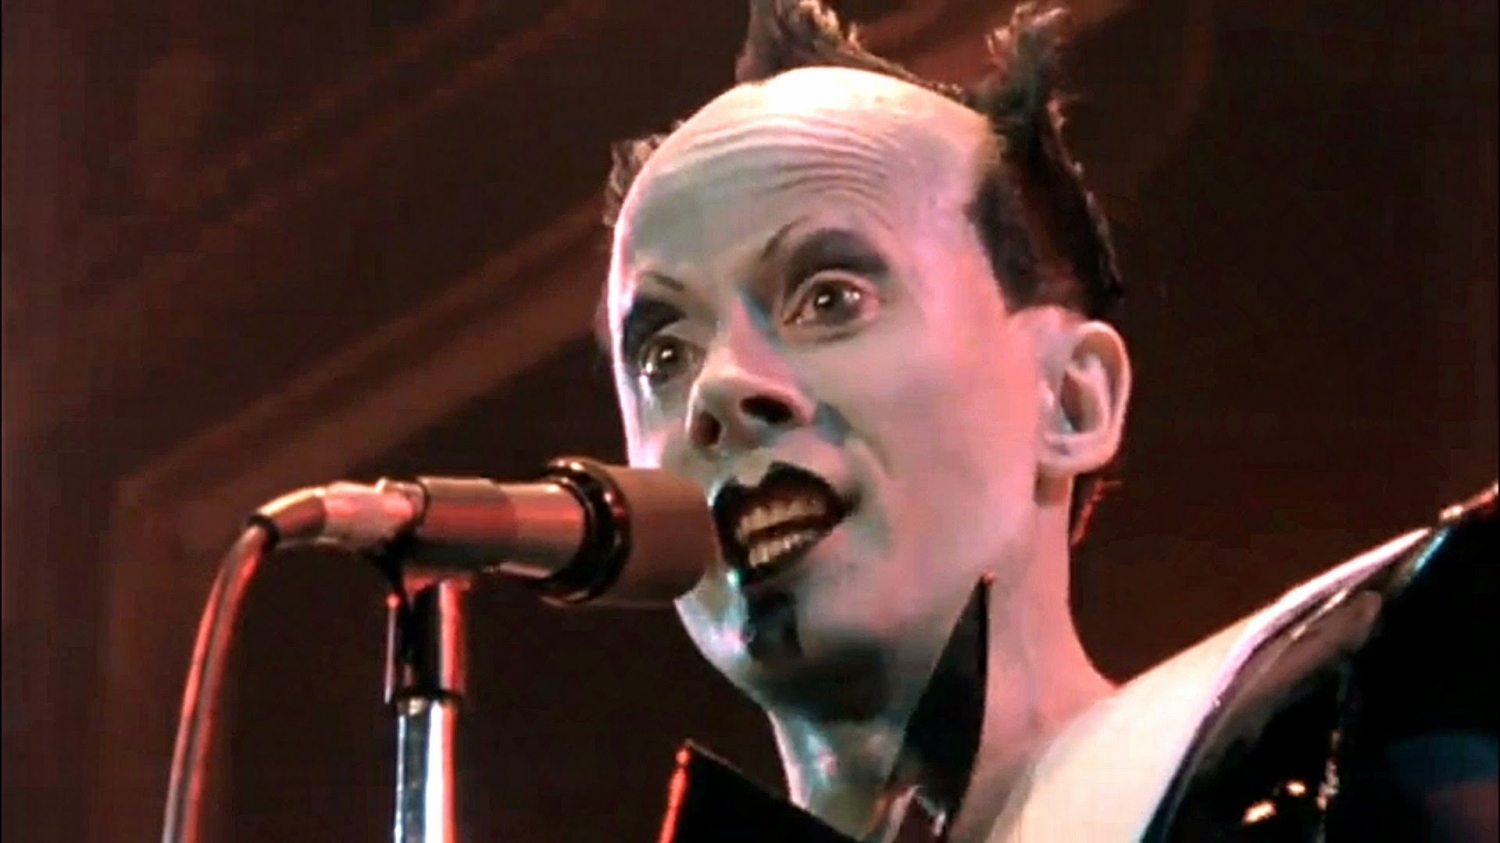 Here's the Klaus Nomi karaoke you'll be needing for your Eclipse Party